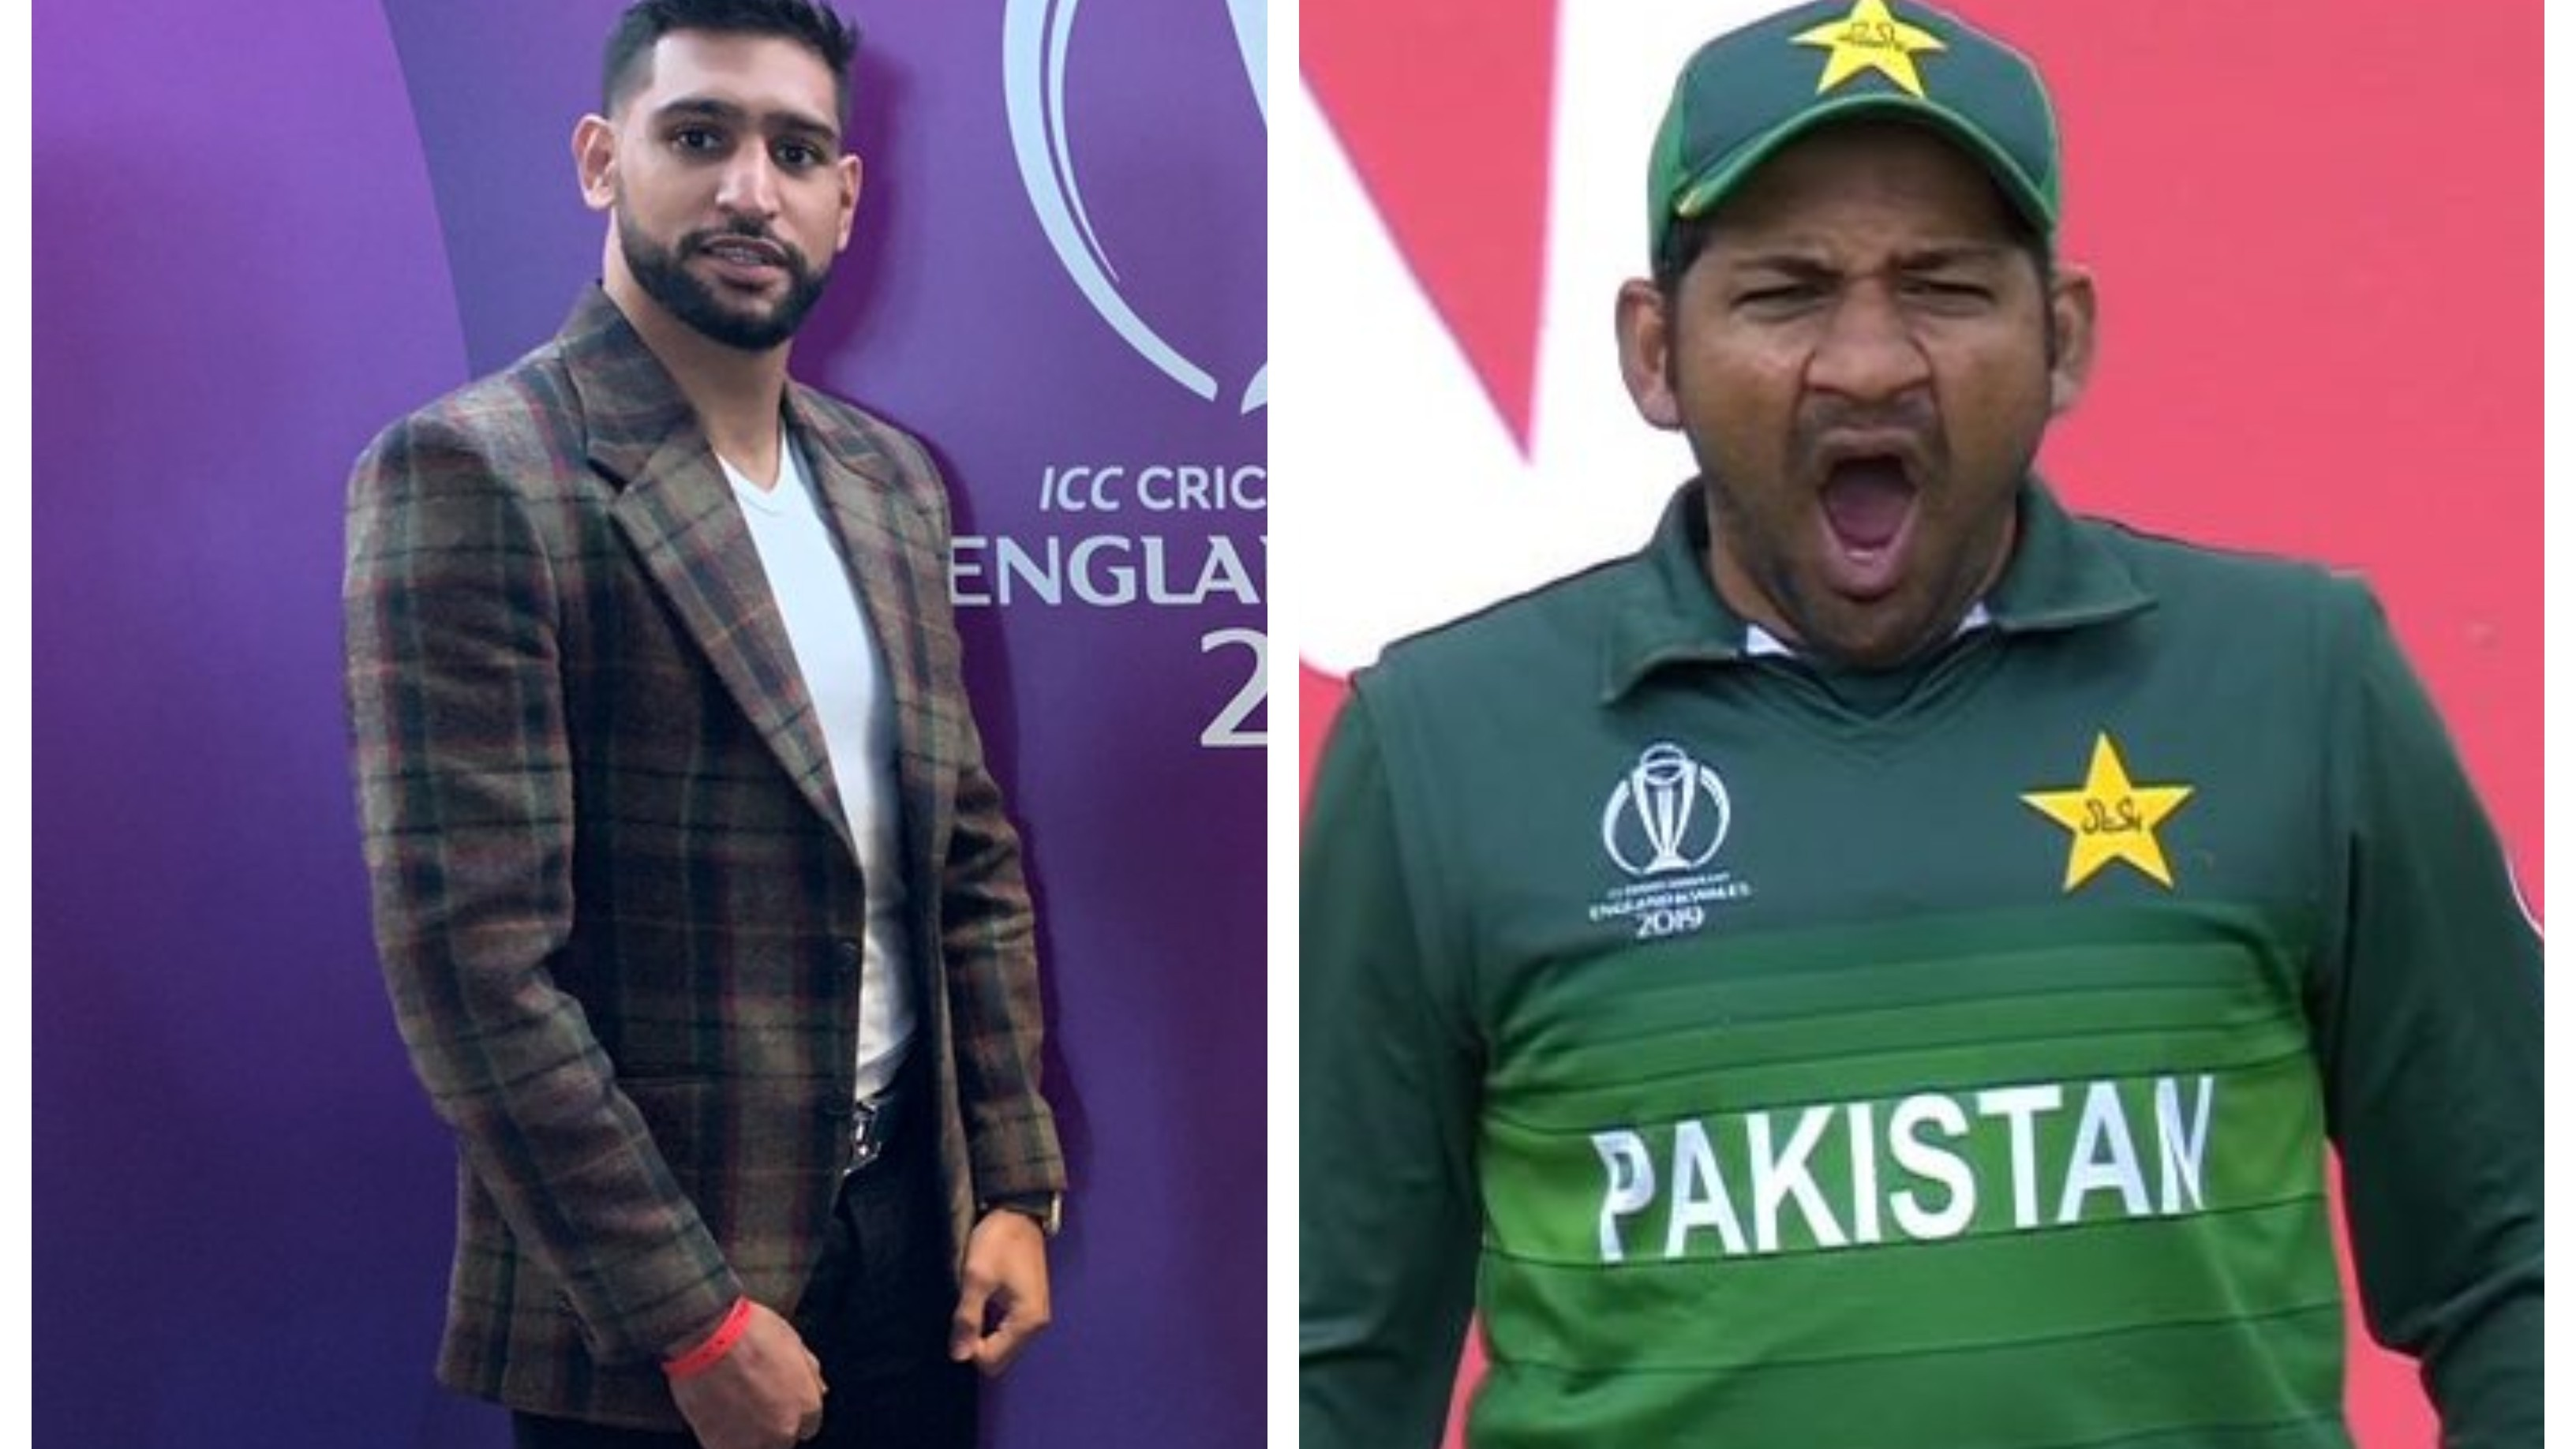 CWC 2019: British boxing star Amir Khan willing to help Pakistan cricketers get fit